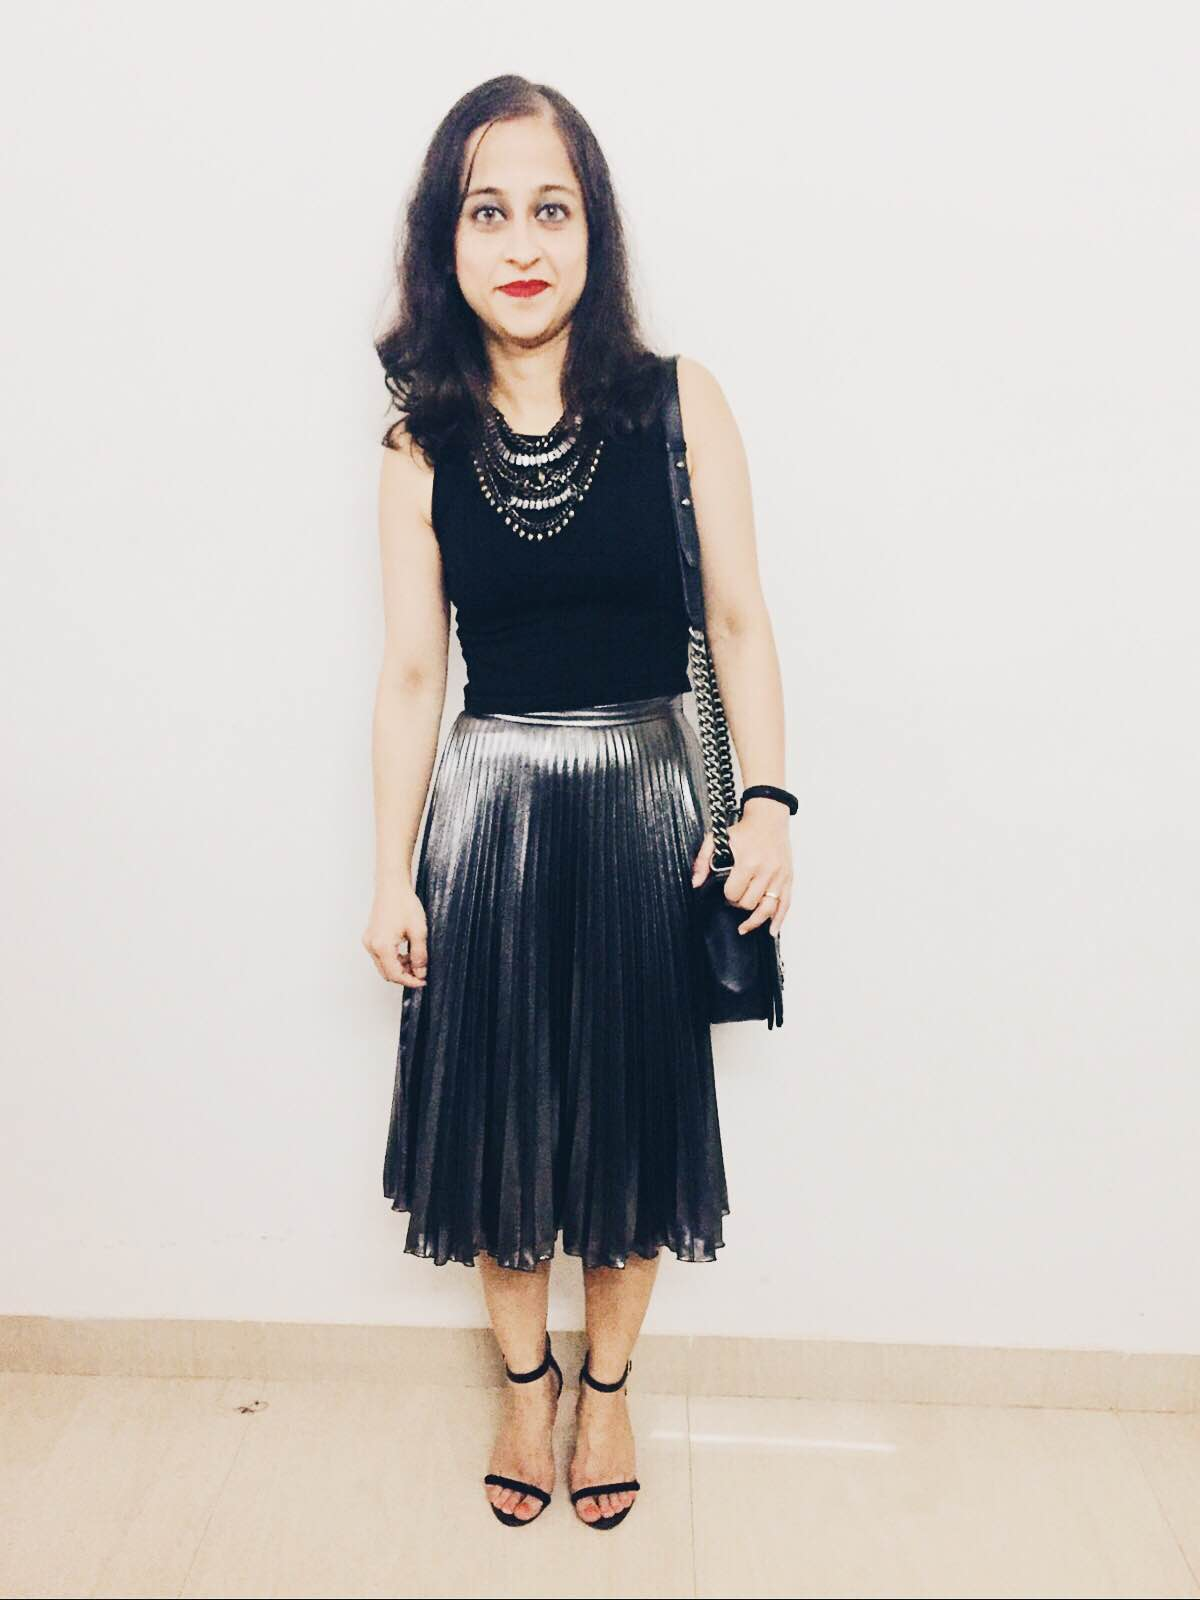 New Year Party Outfits Silver skirt and crop top